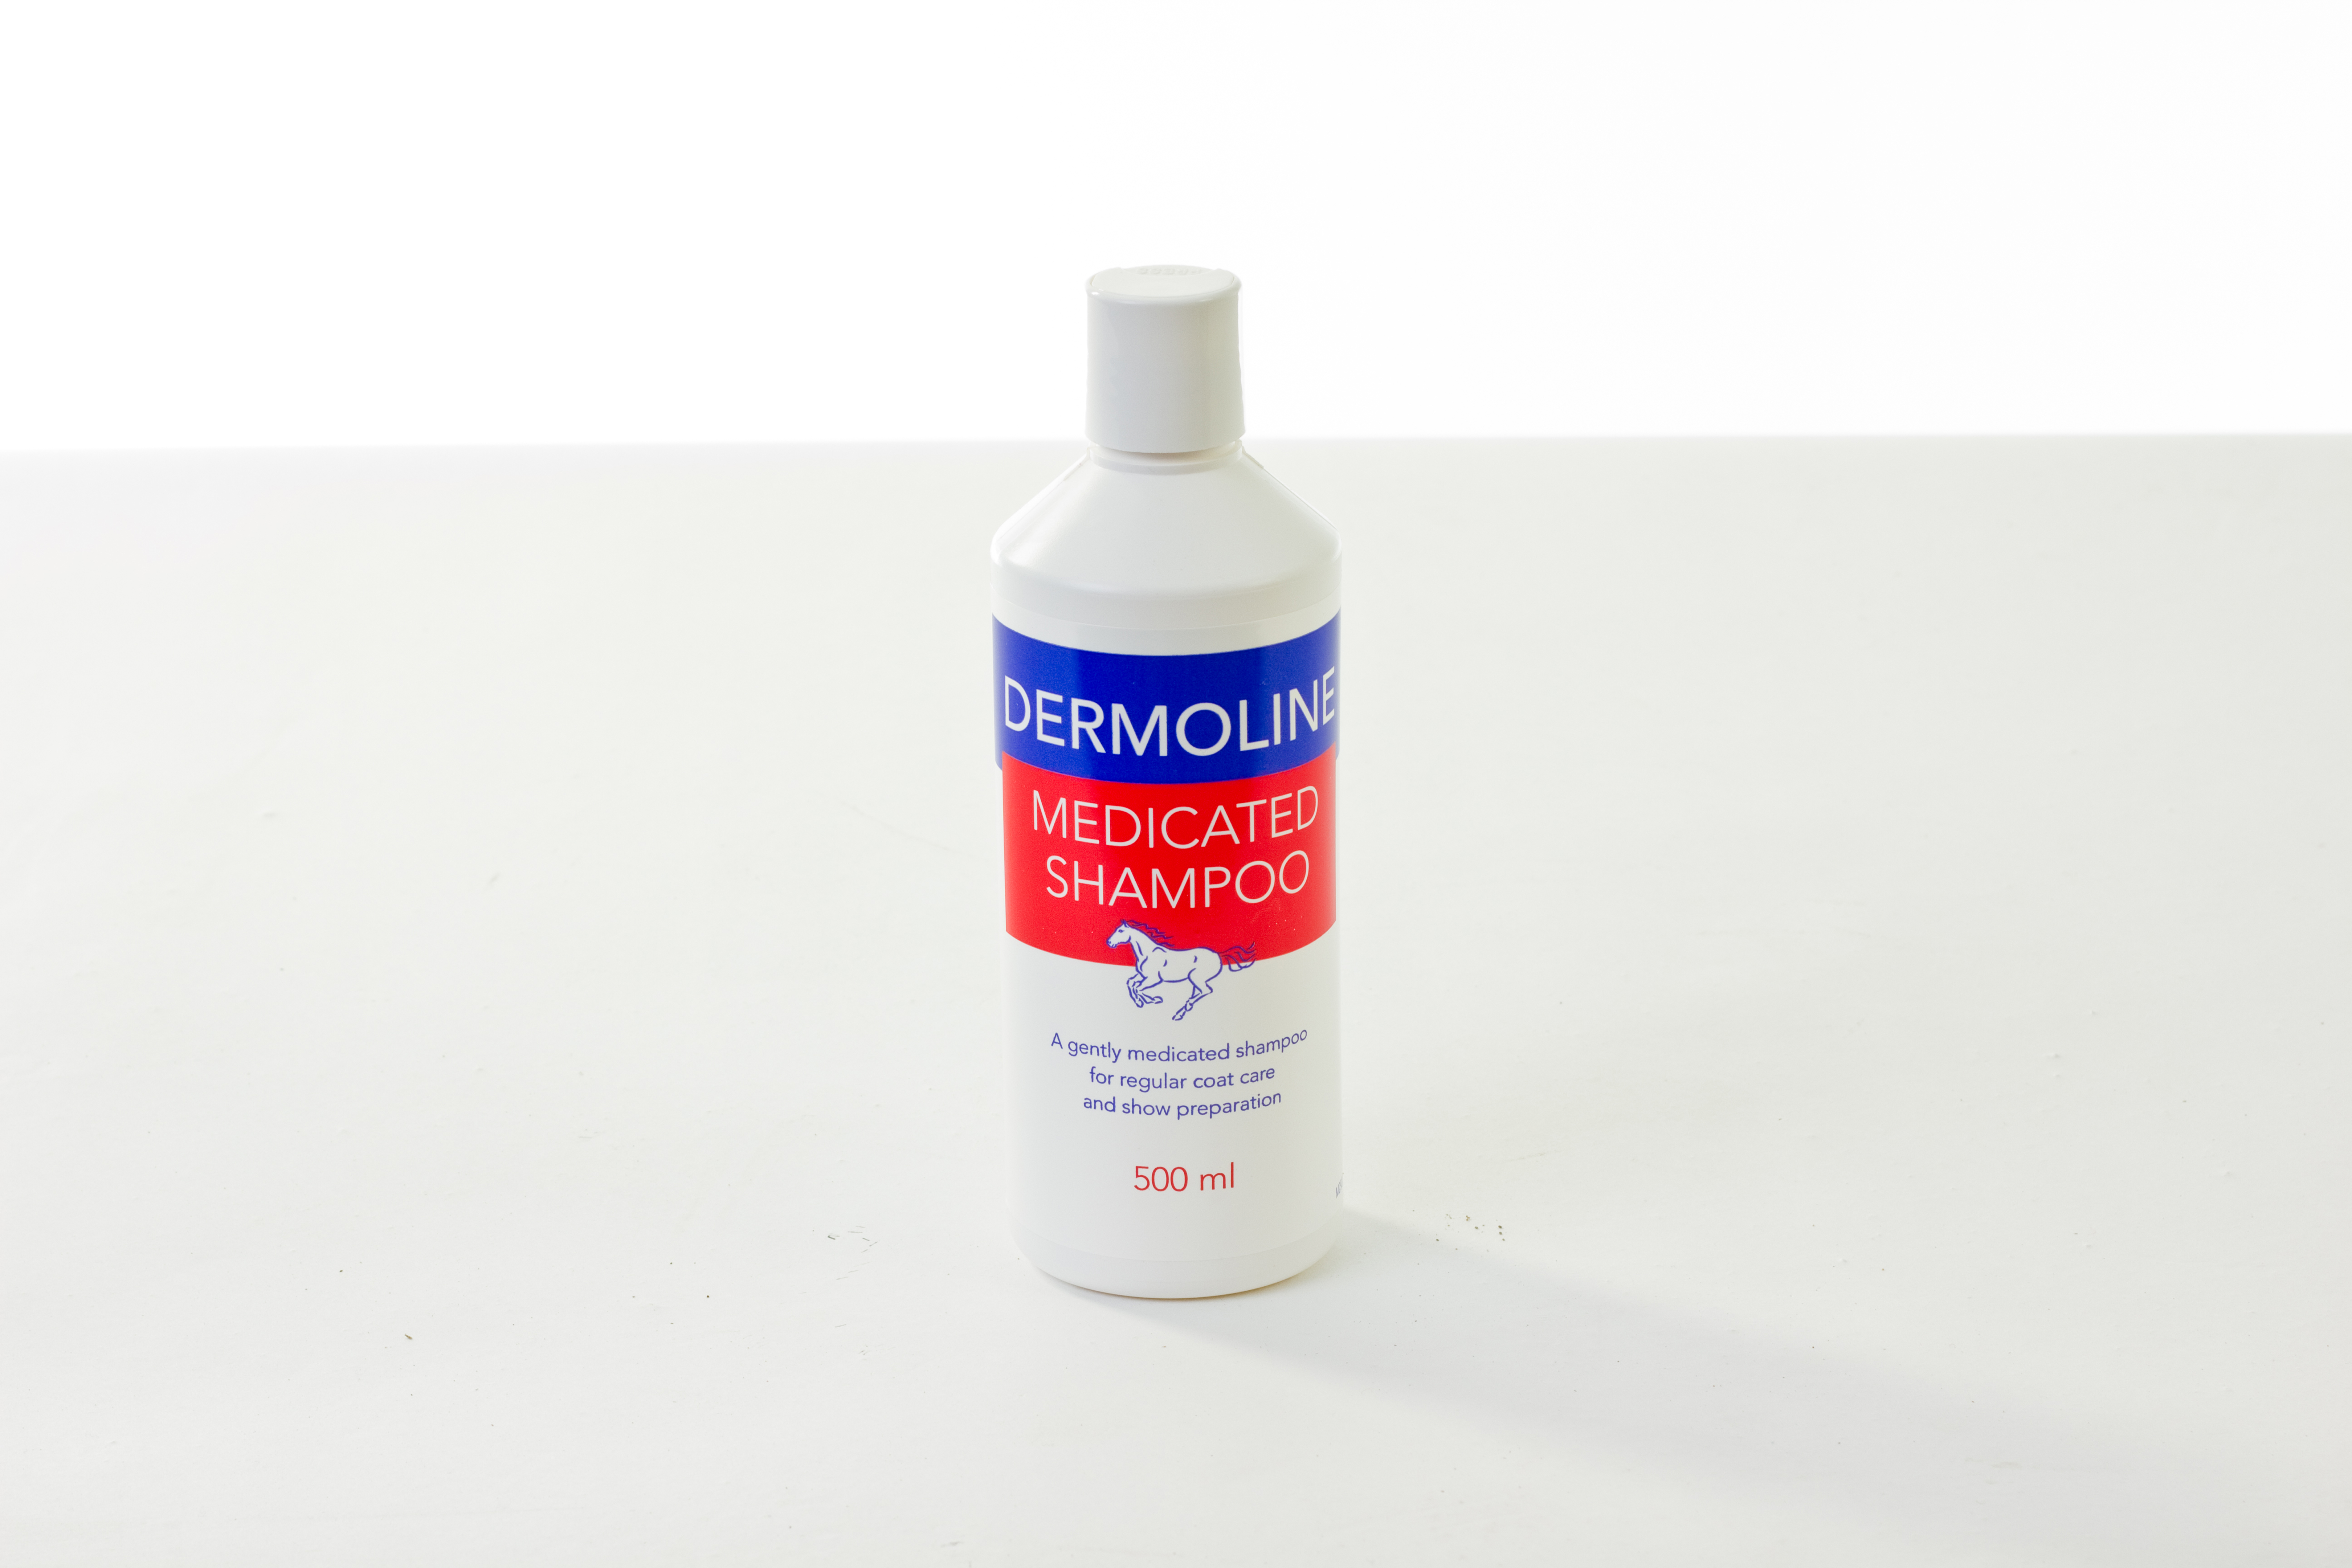 Dermoline Medicated Shampoo for Horses